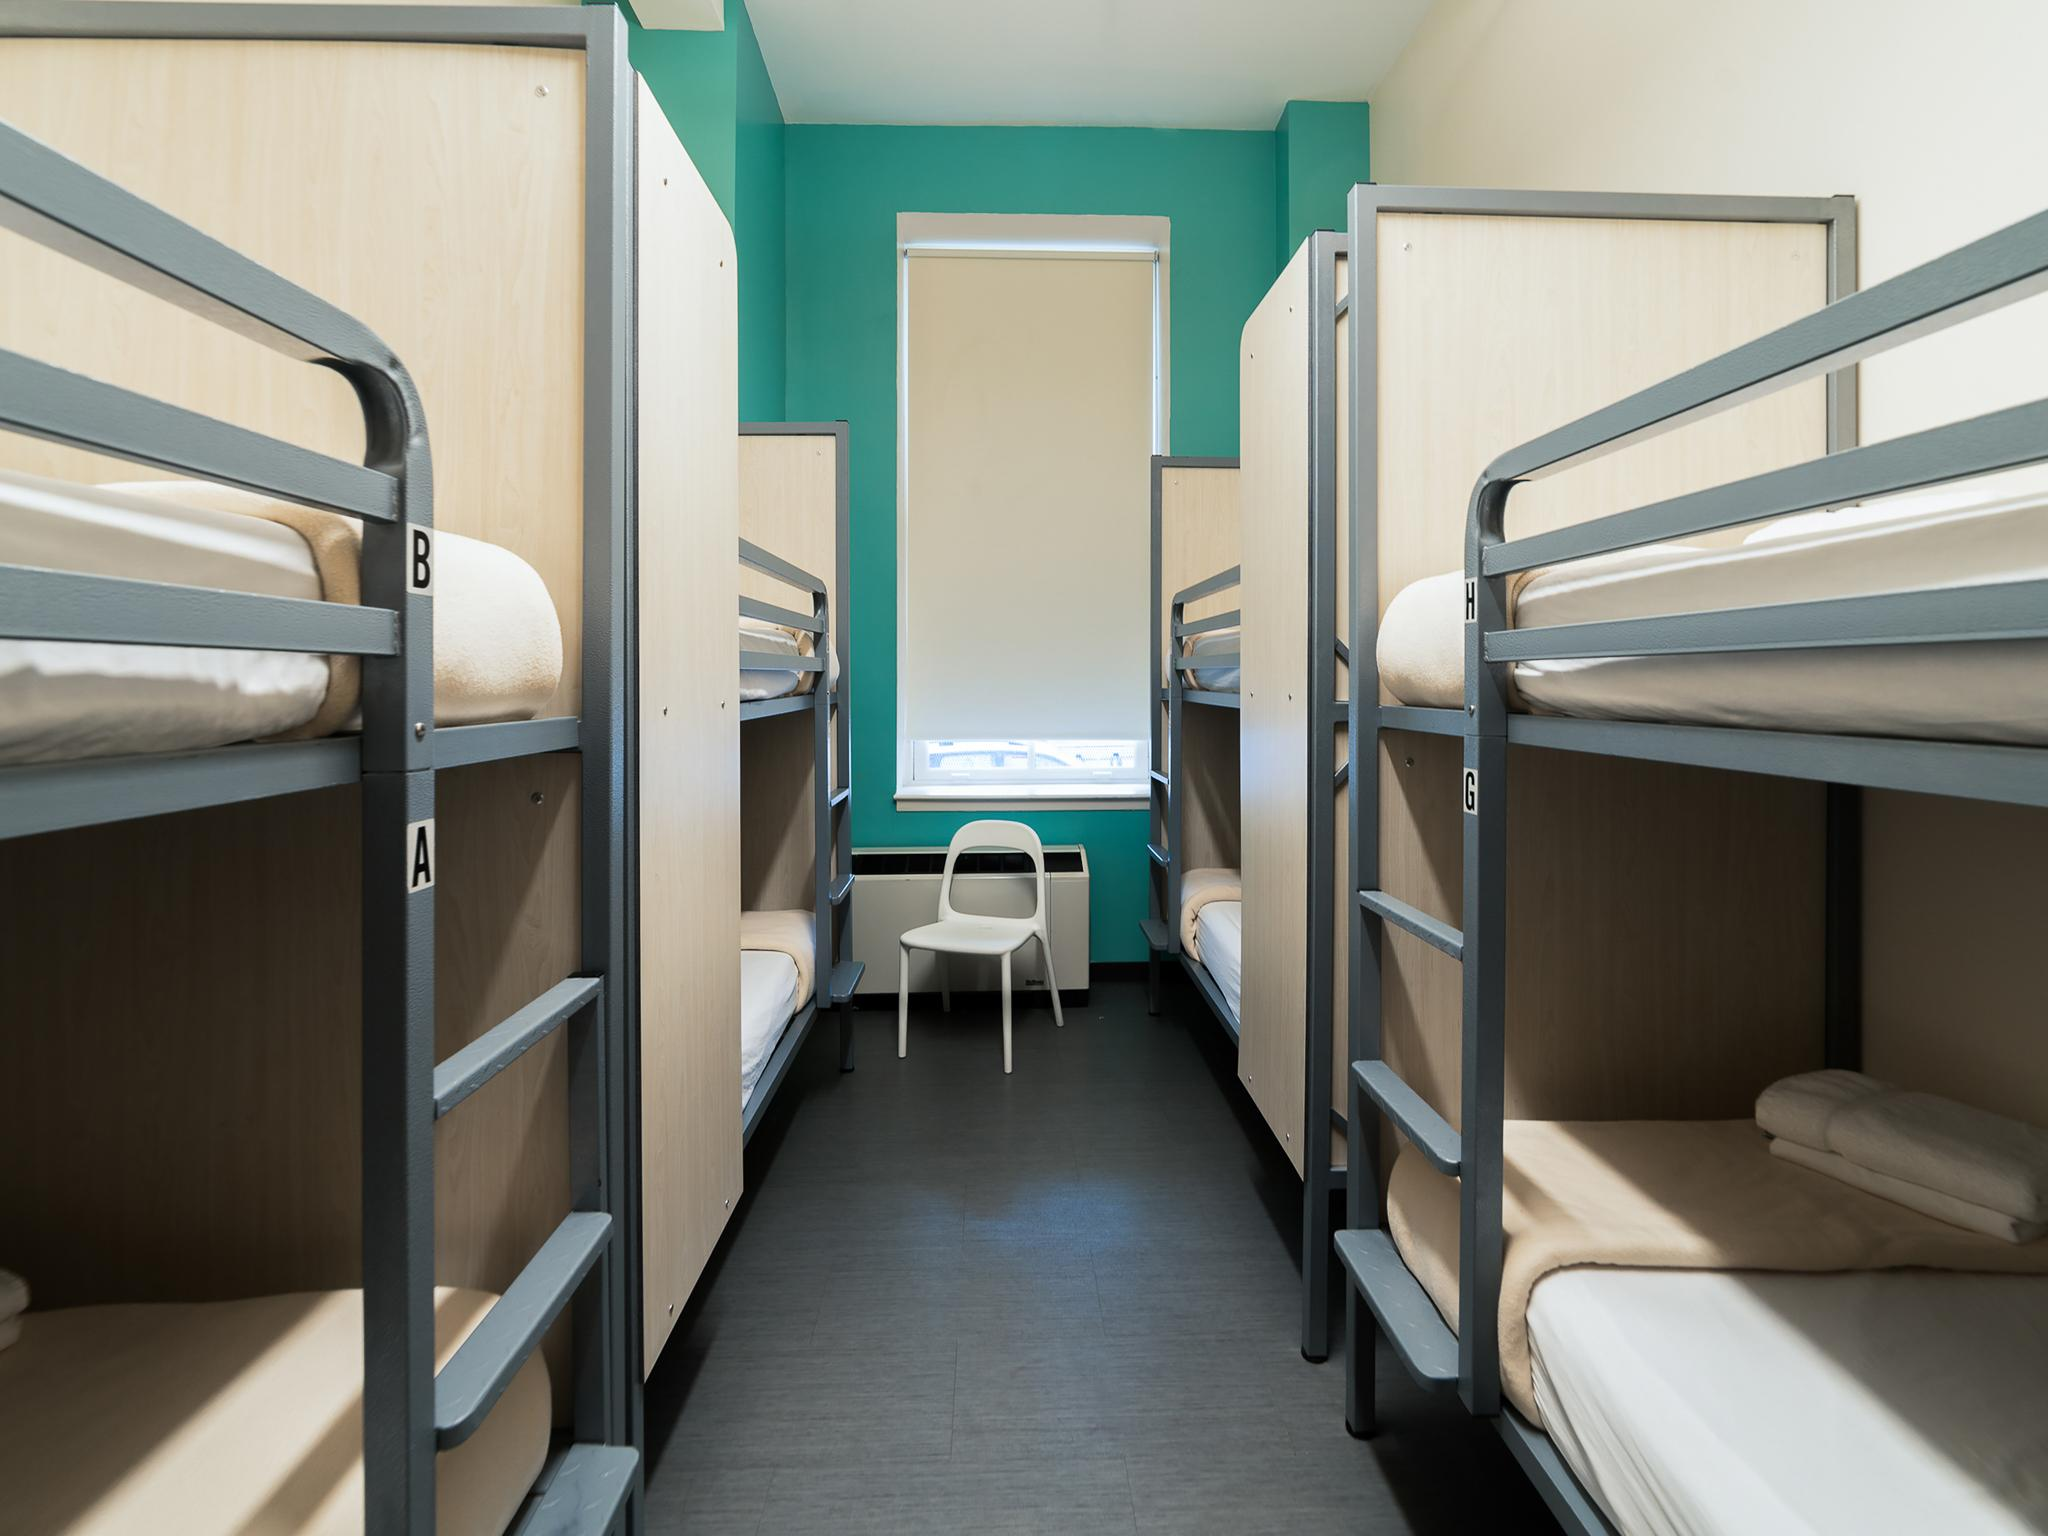 Mixed Dormitory - 8 Bunk Beds